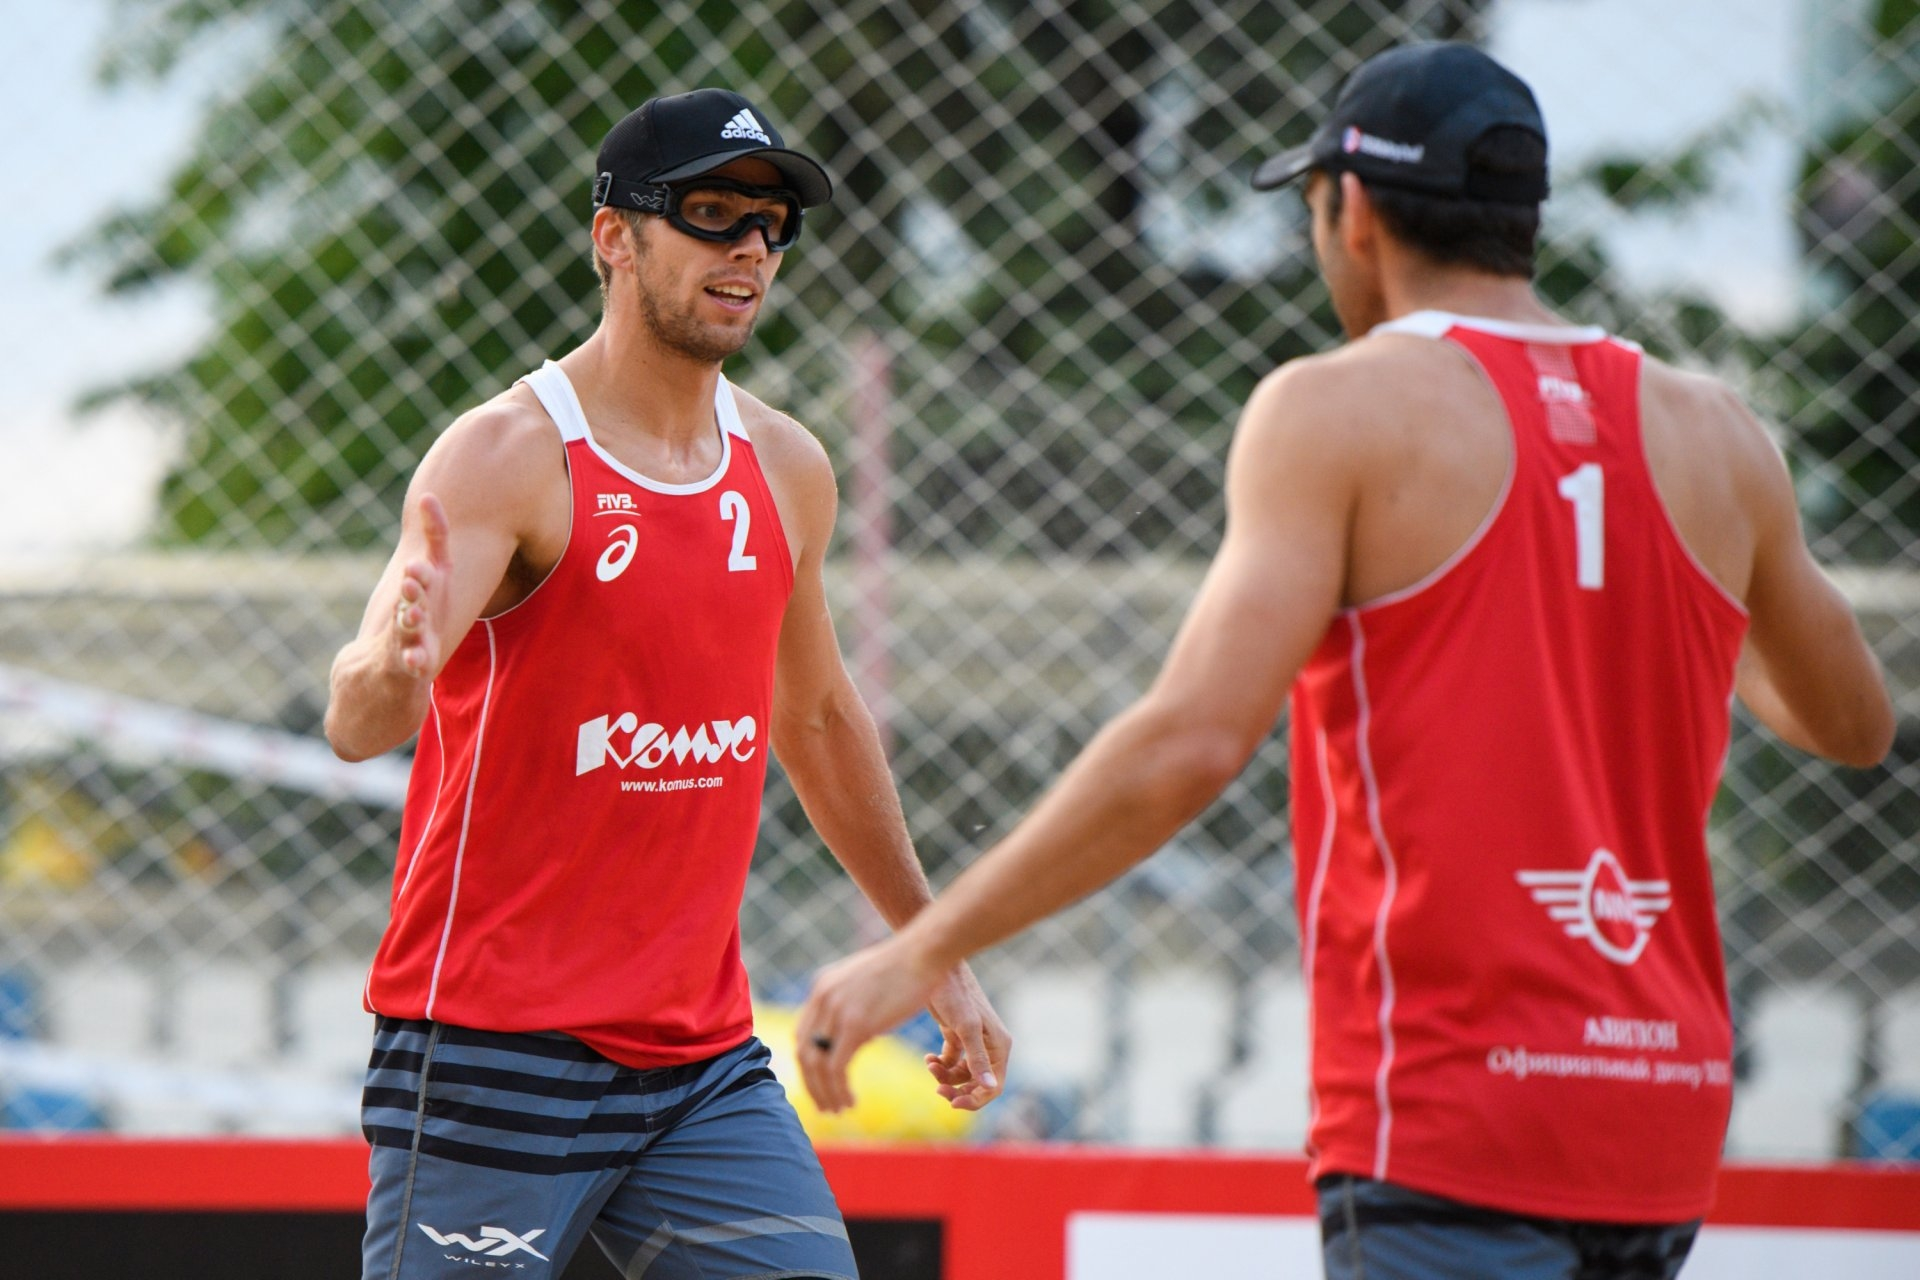 Slick and Allen will also be together again after partnering in the 2017 season (Photocredit: FIVB)